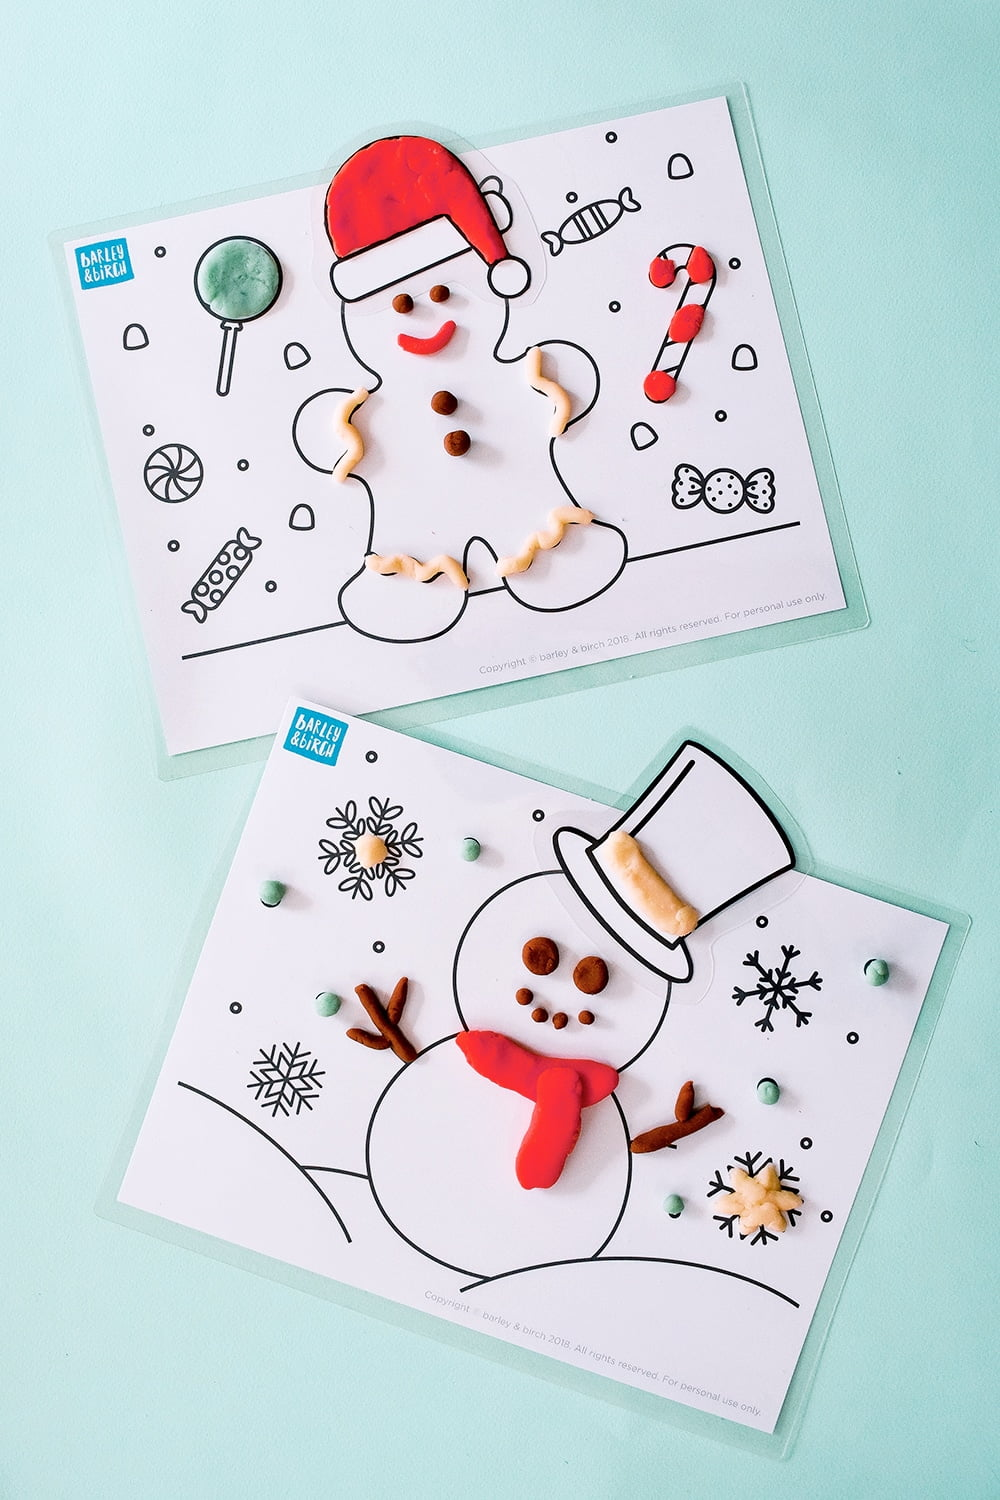 Make gingerbread and snowmen with these festive winter play dough mats! Add spices, peppermint and glitter for a fun winter sensory experience. | via barley & birch